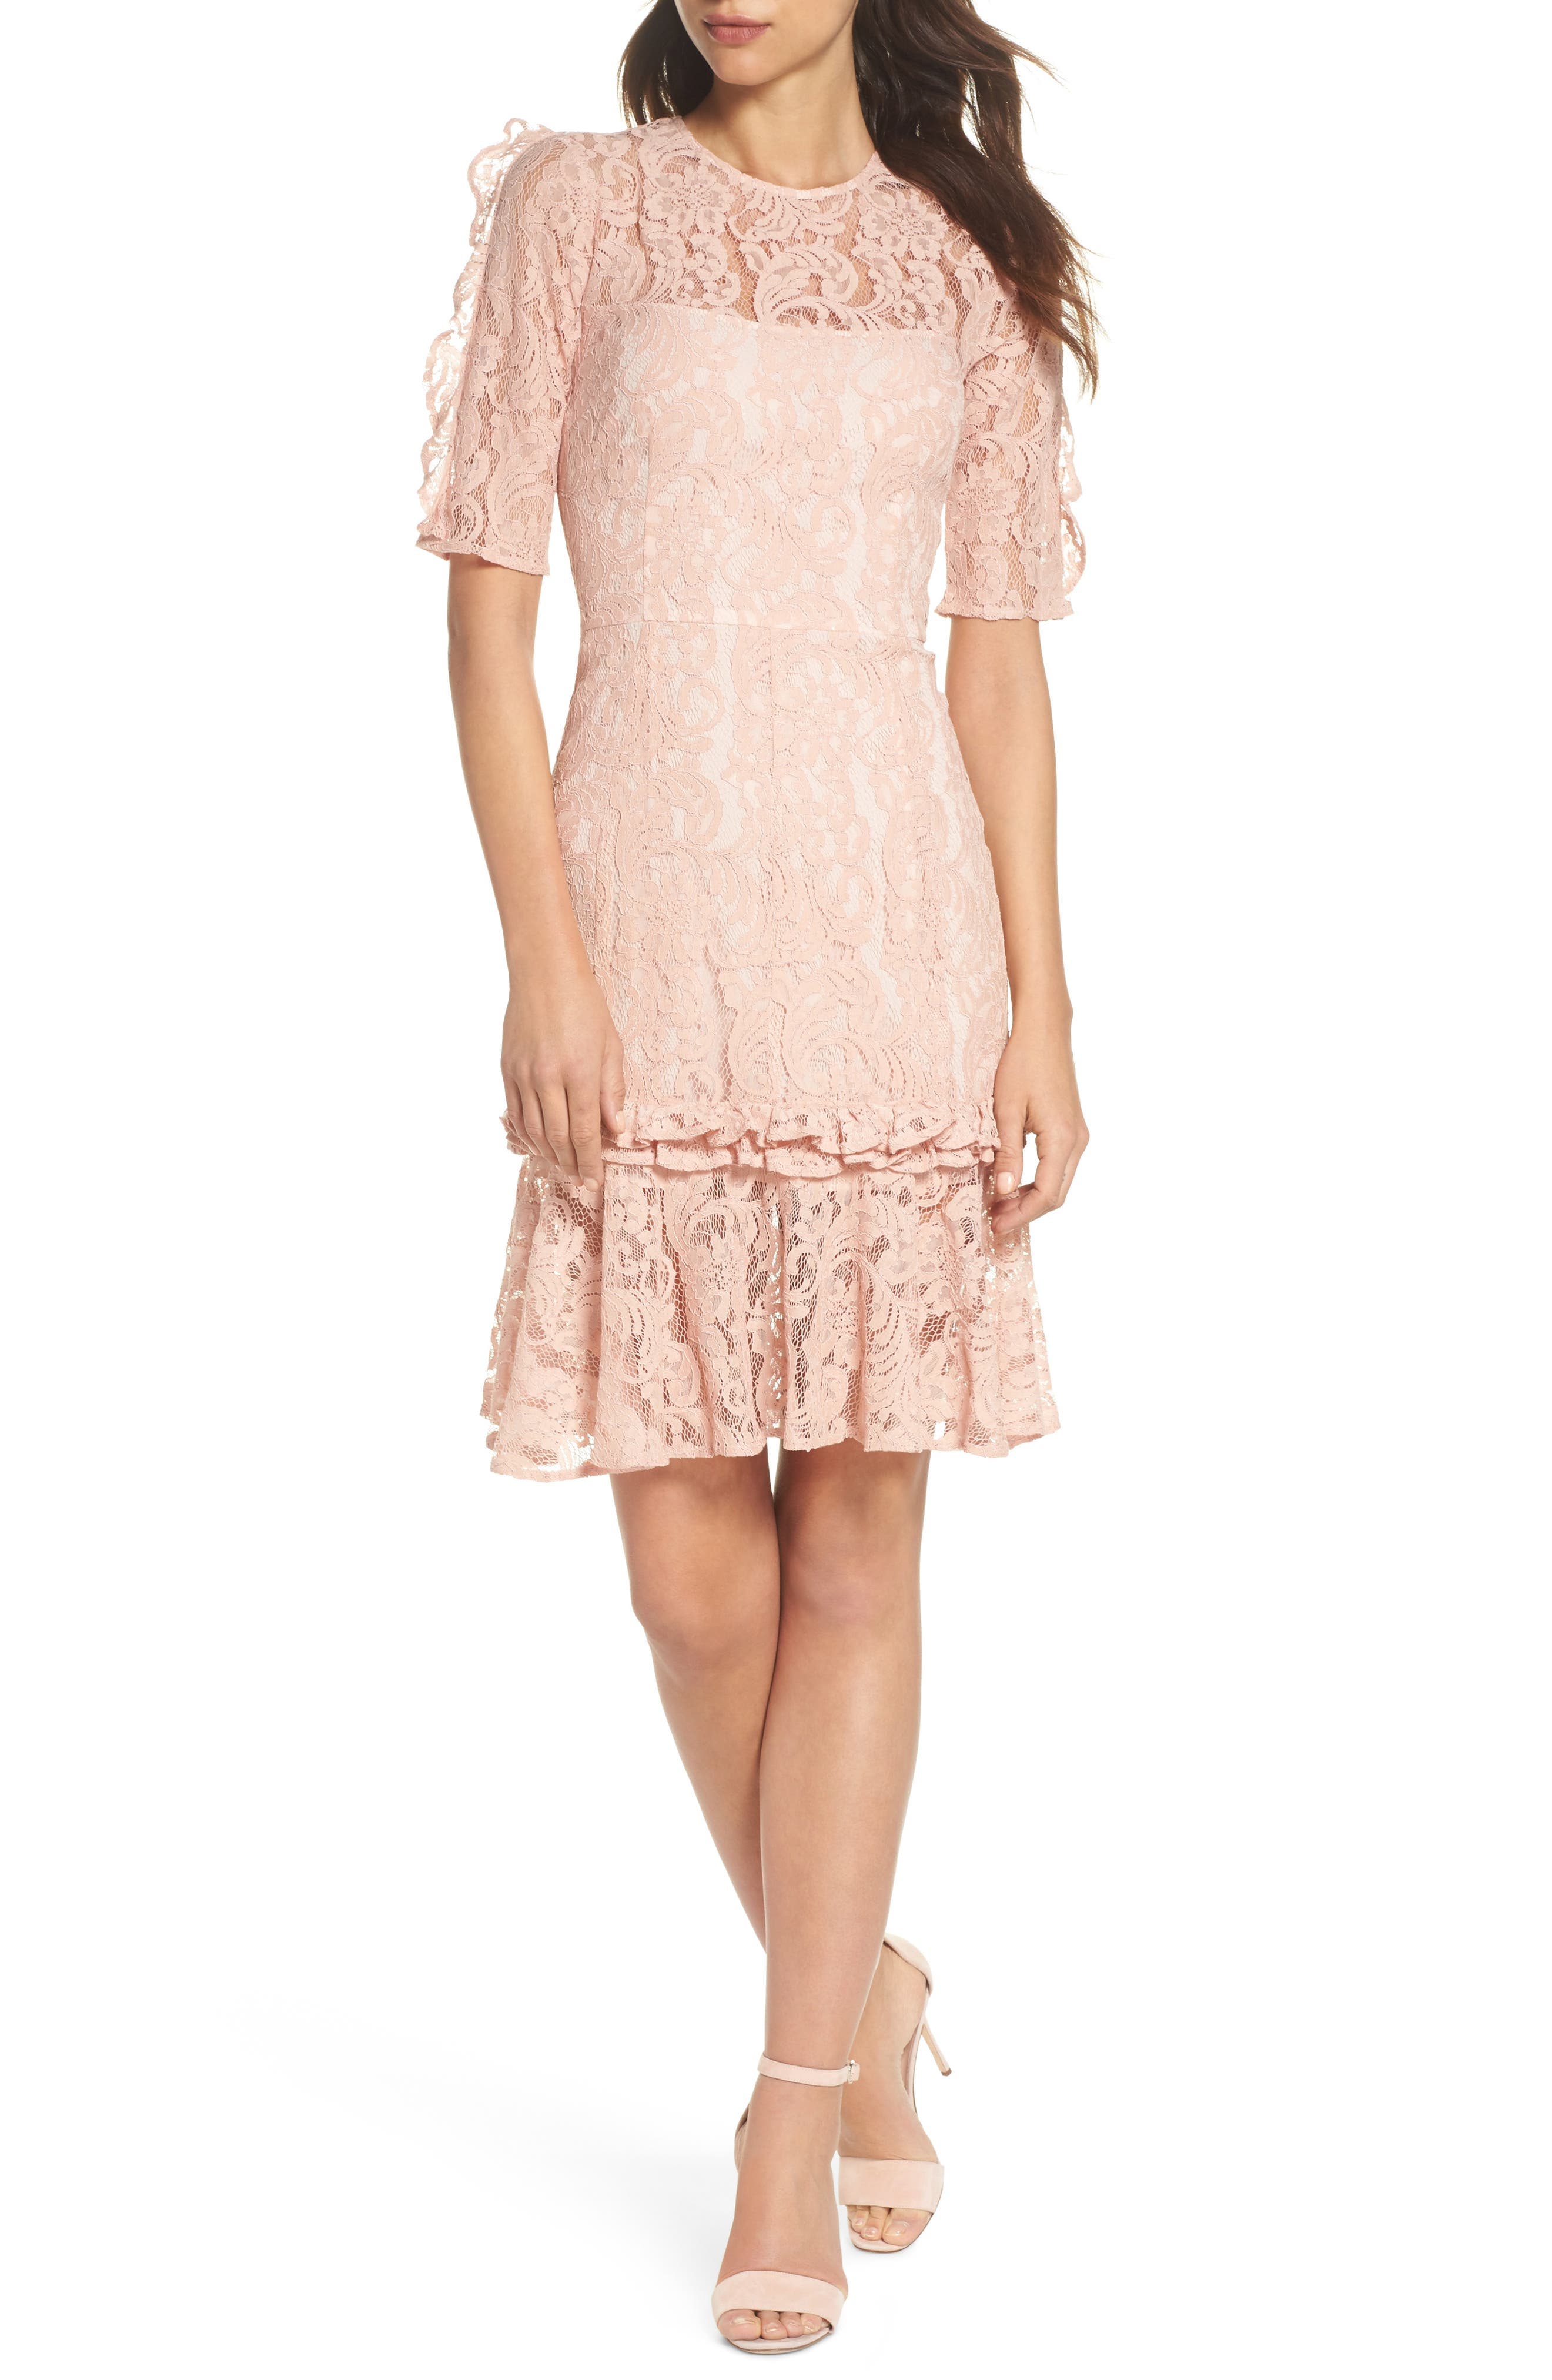 COOPER ST Hushed Dove Lace Dress, Main, color, 650